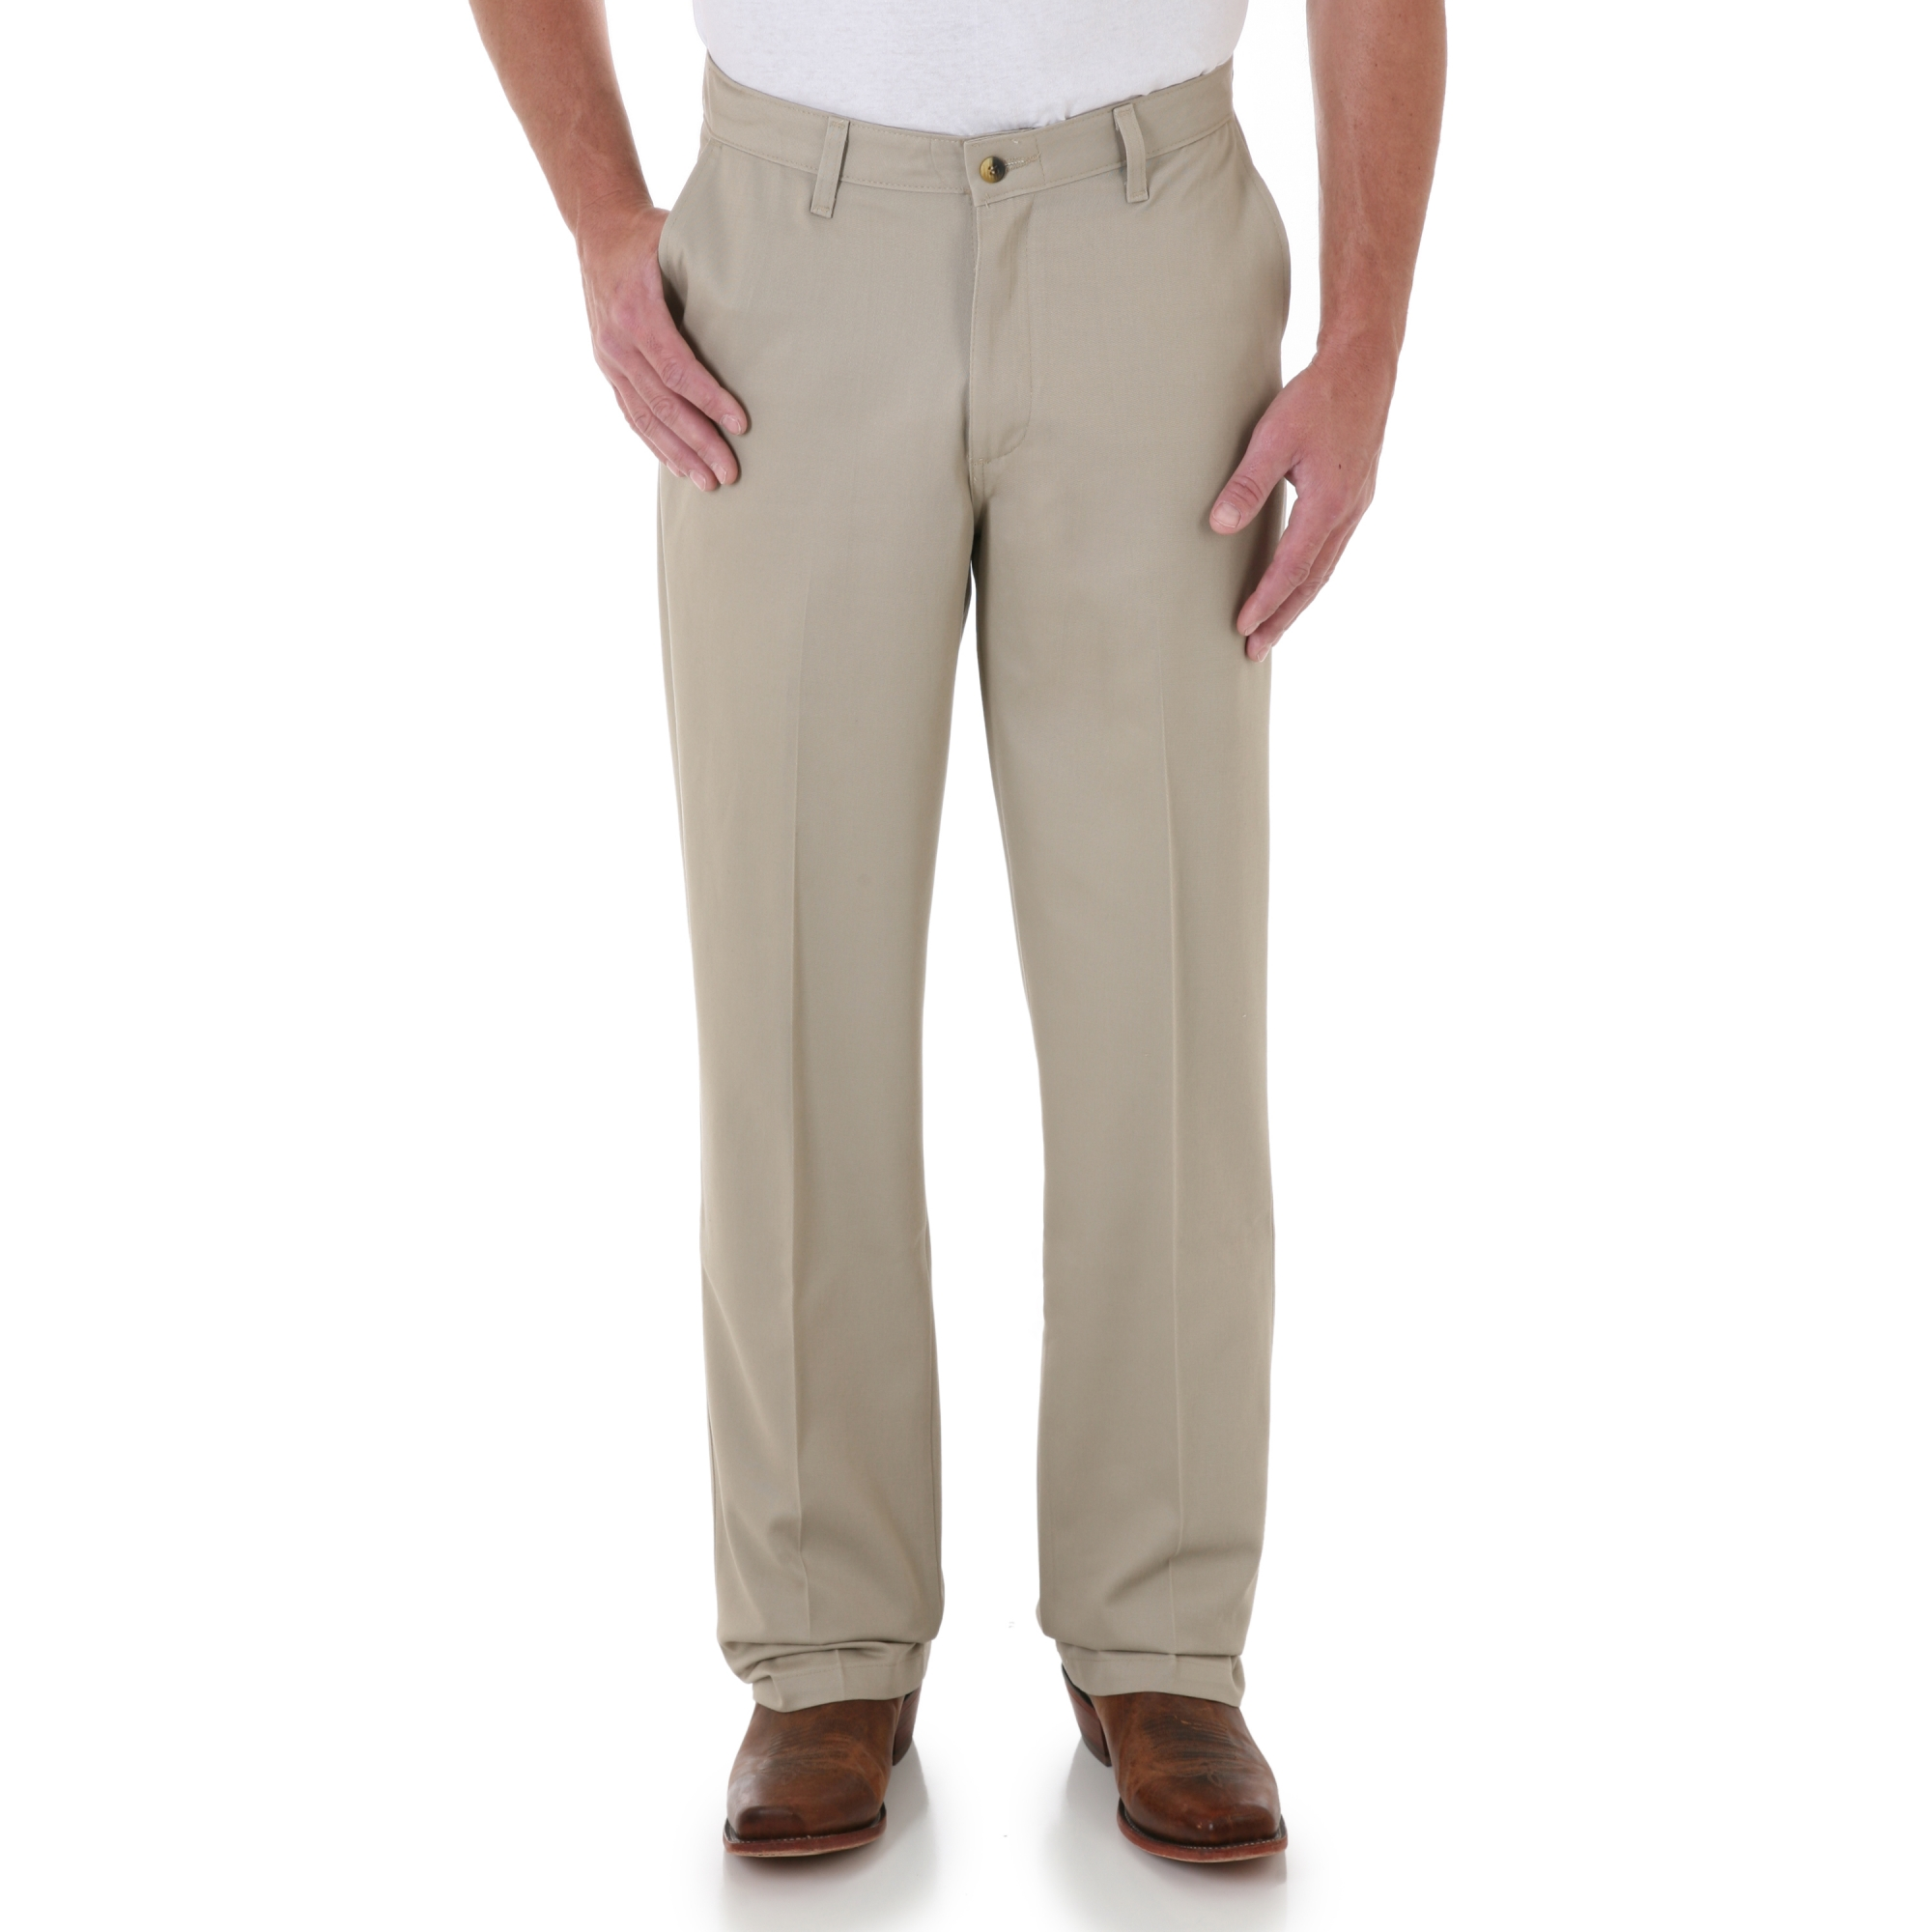 76d730b9 Murdoch's – Wrangler - Men's Riata Flat Front Relaxed Fit Casual Pant